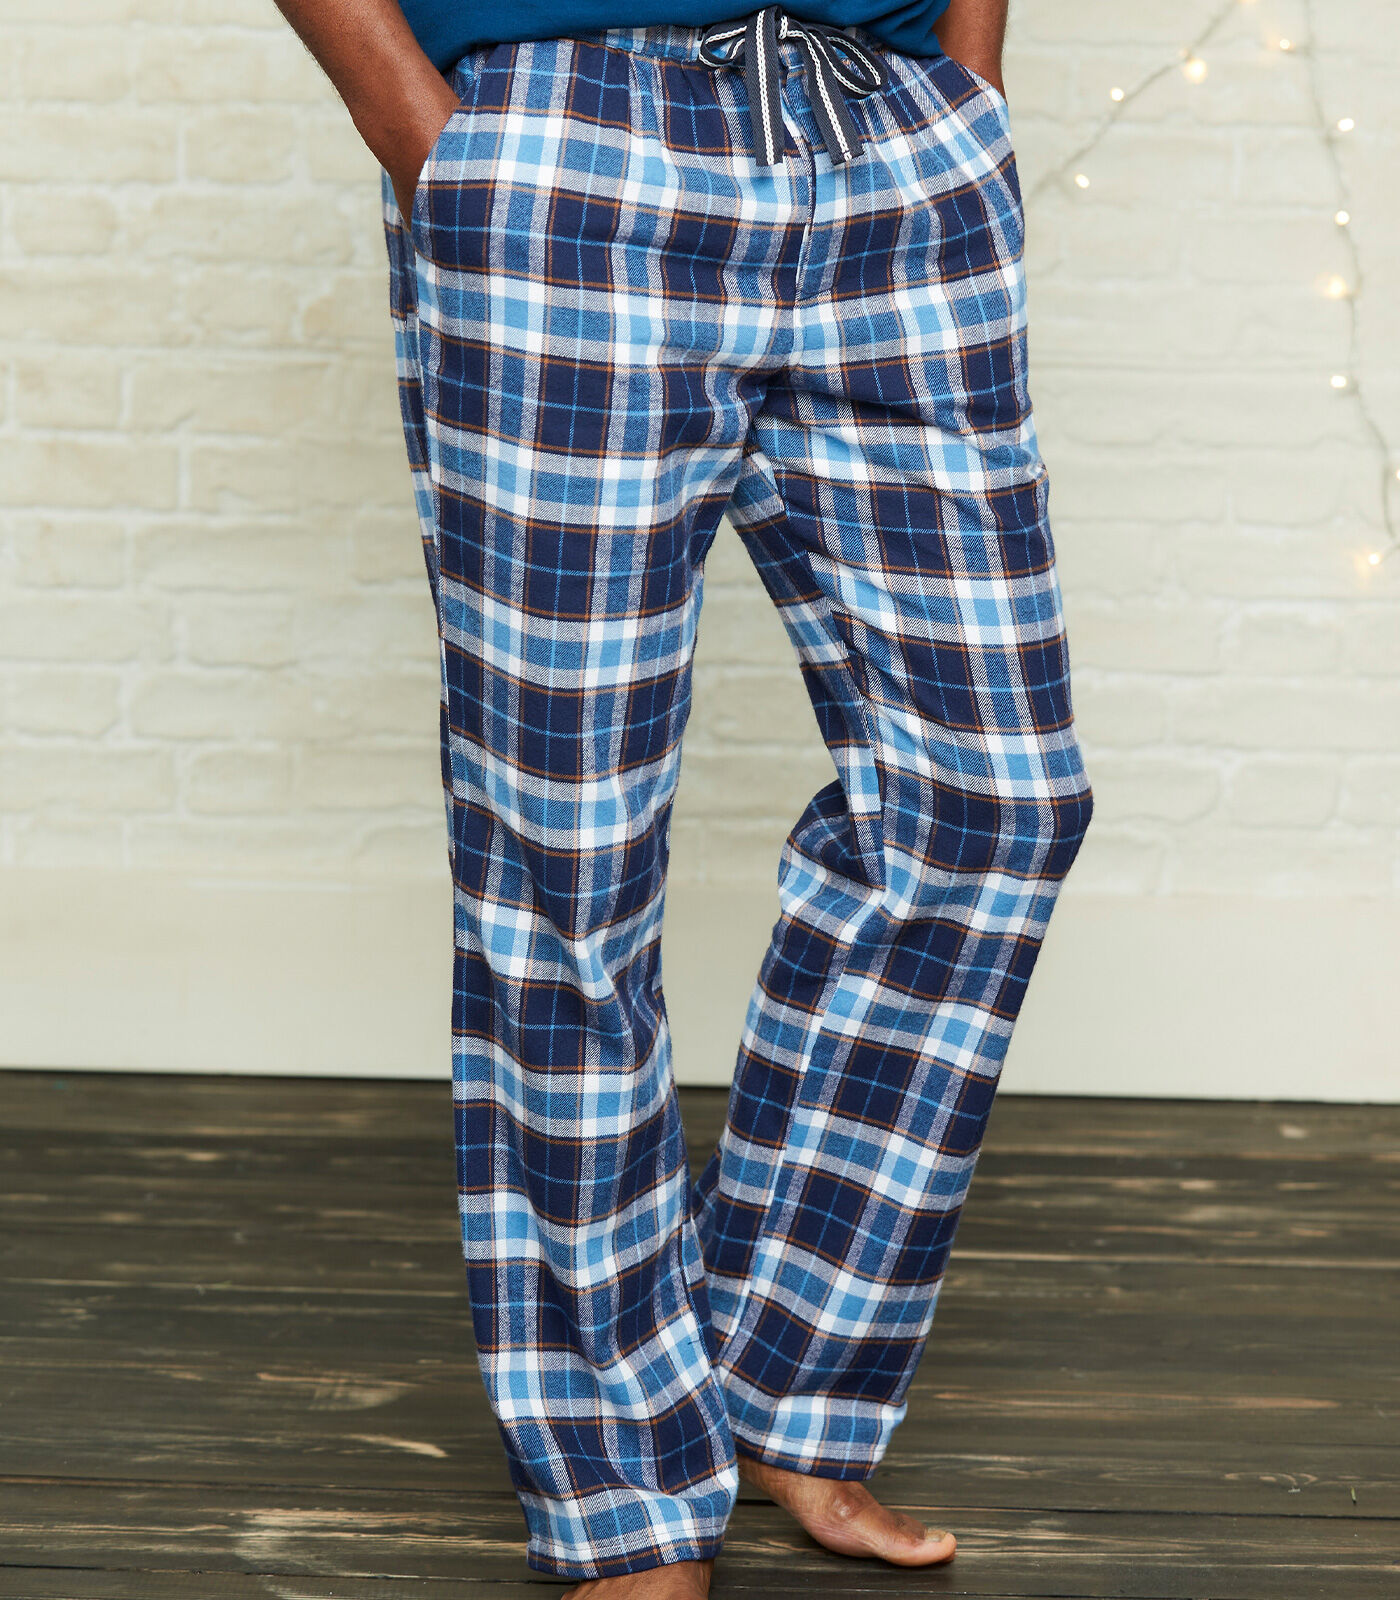 Cosy Nights In | Loungewear Trousers | By Cotton Traders